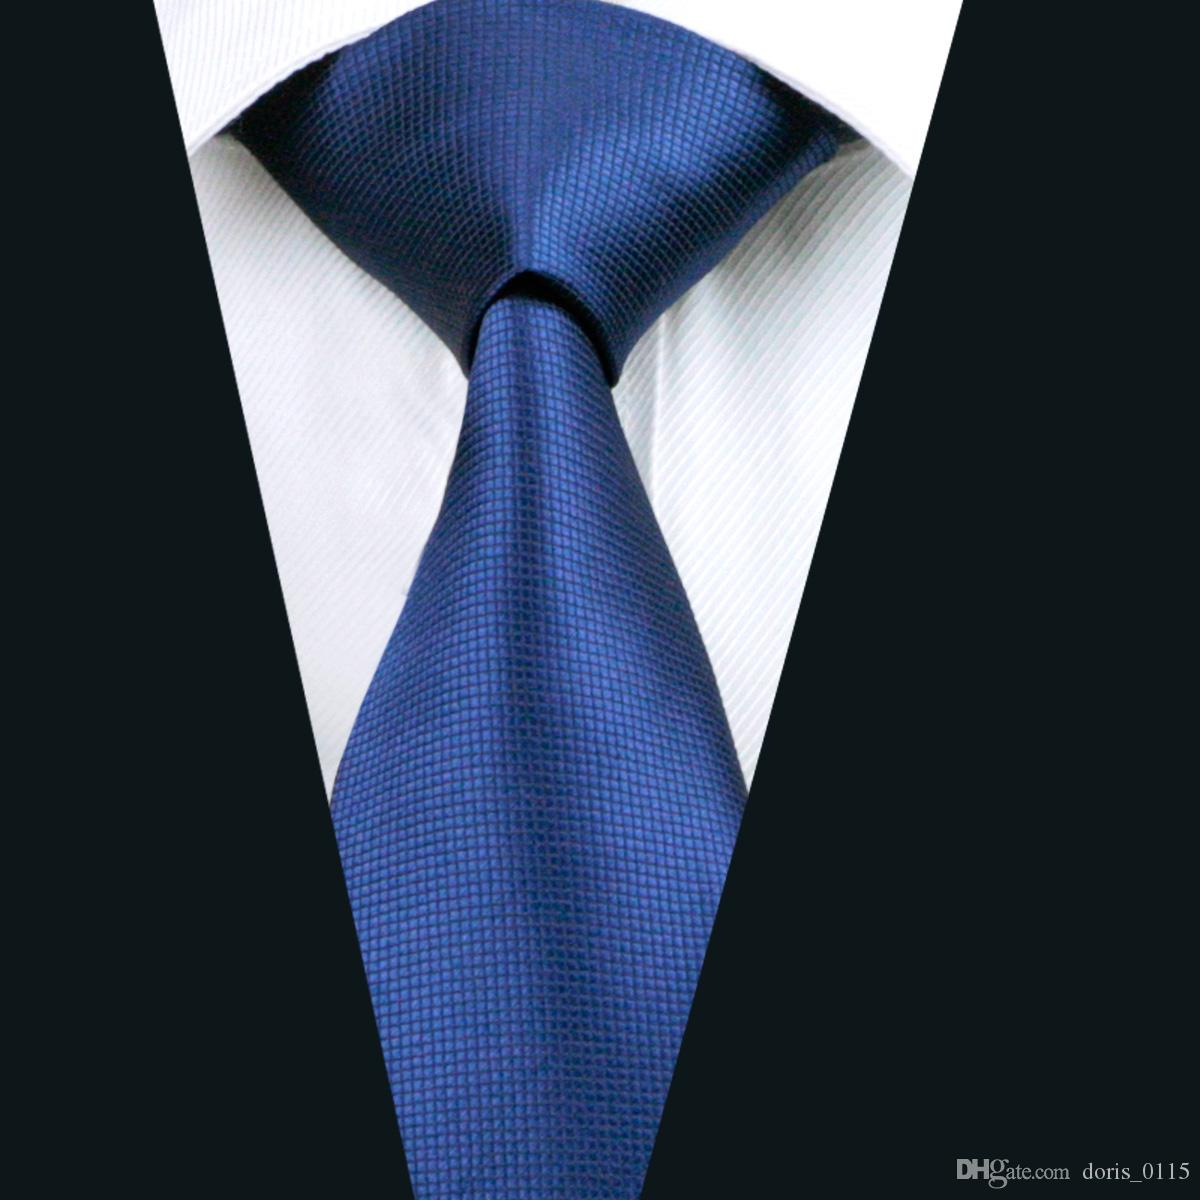 Classic Solid Blue Necktie for Men Silk Jacquard Woven Business Tie Meeting Casual Suit Tie D-0326